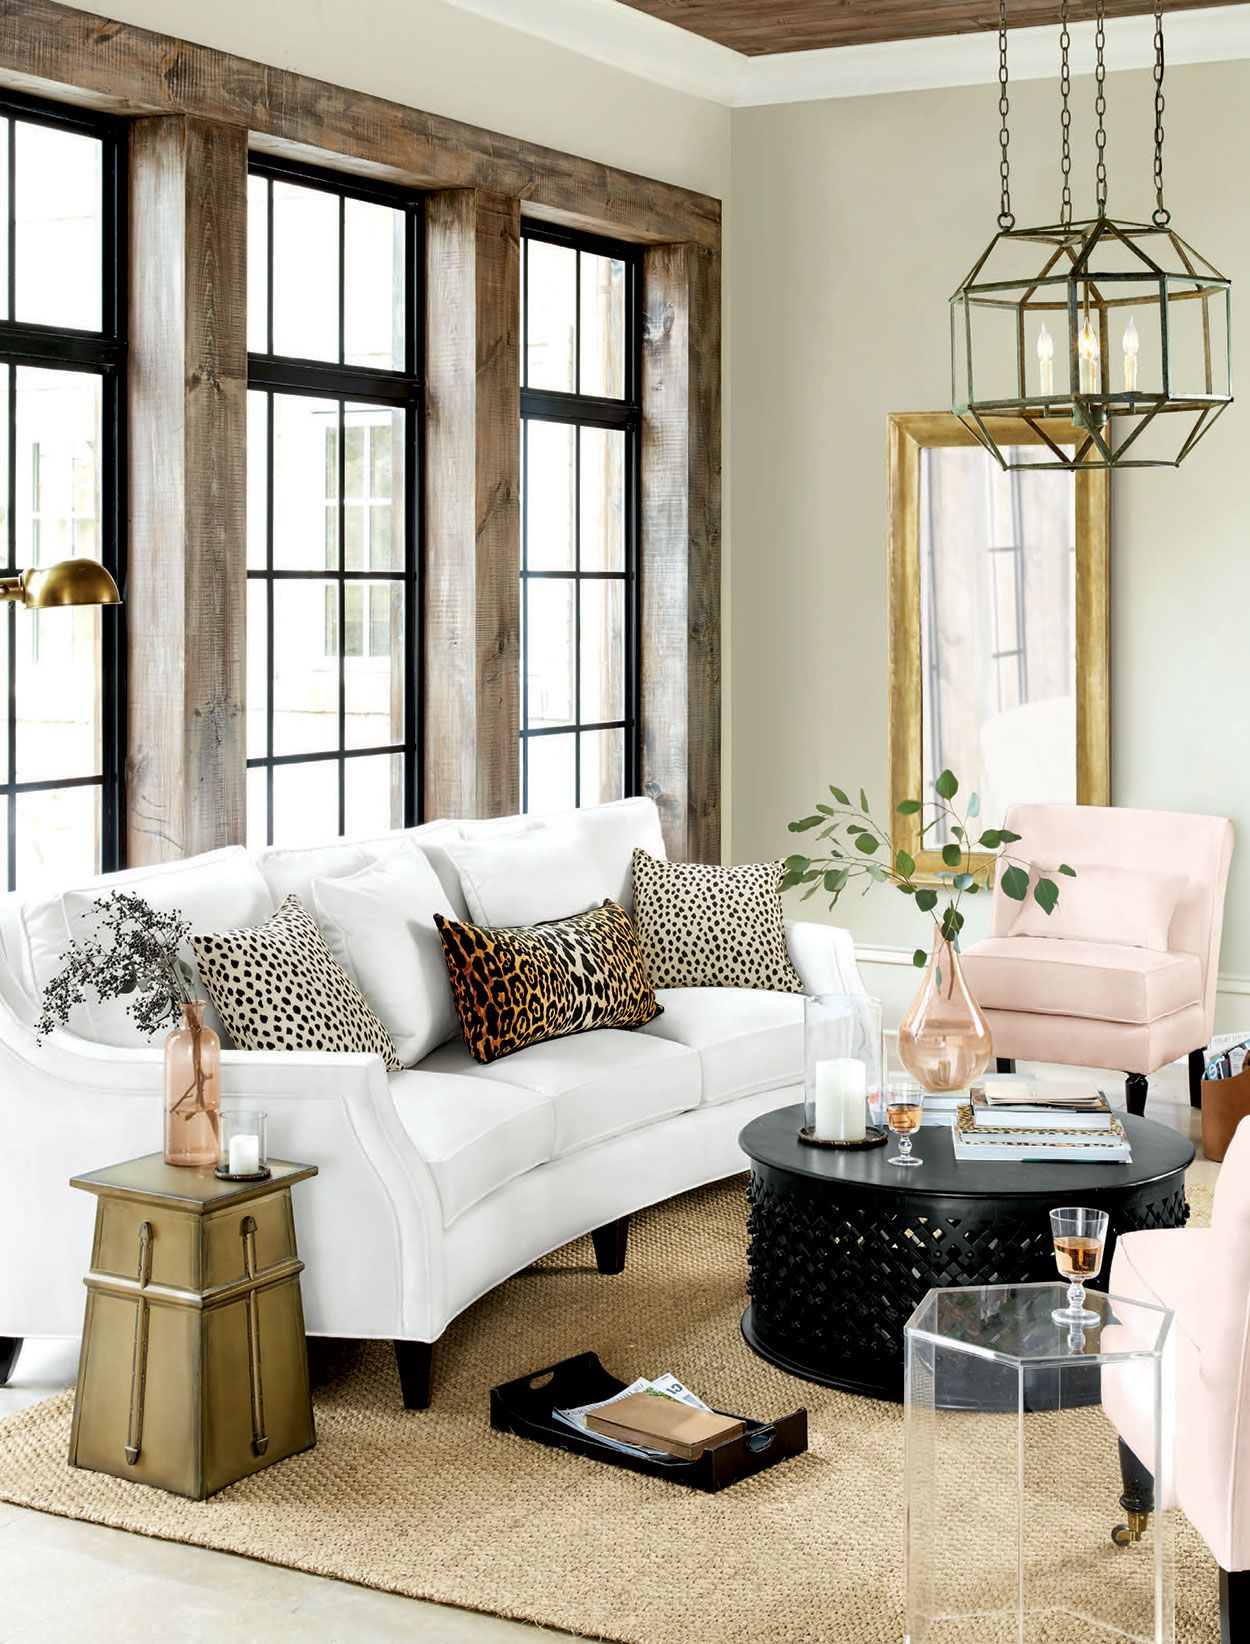 few animal print throw pillows bring playful modern edge to this living room also rooms and rh pinterest